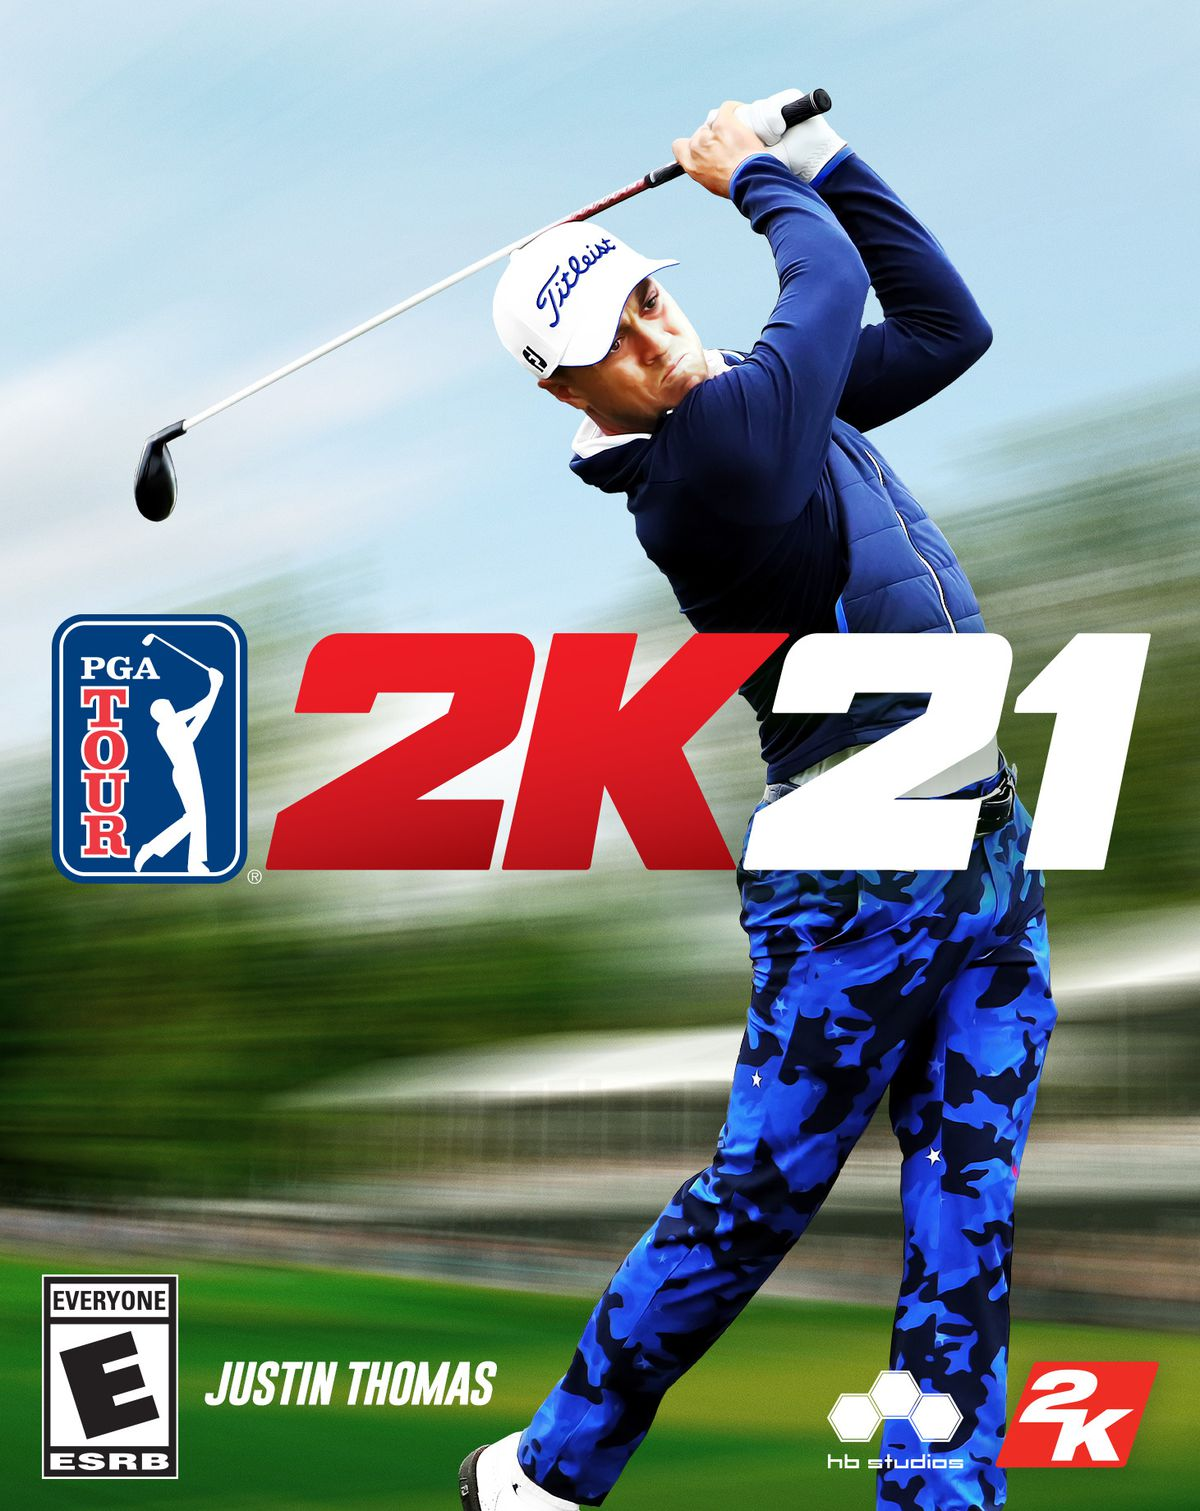 PGA Tour 2K21 box art with Justin Thomas, wearing blue/black camo pants and a blue padded vest, completing a swing